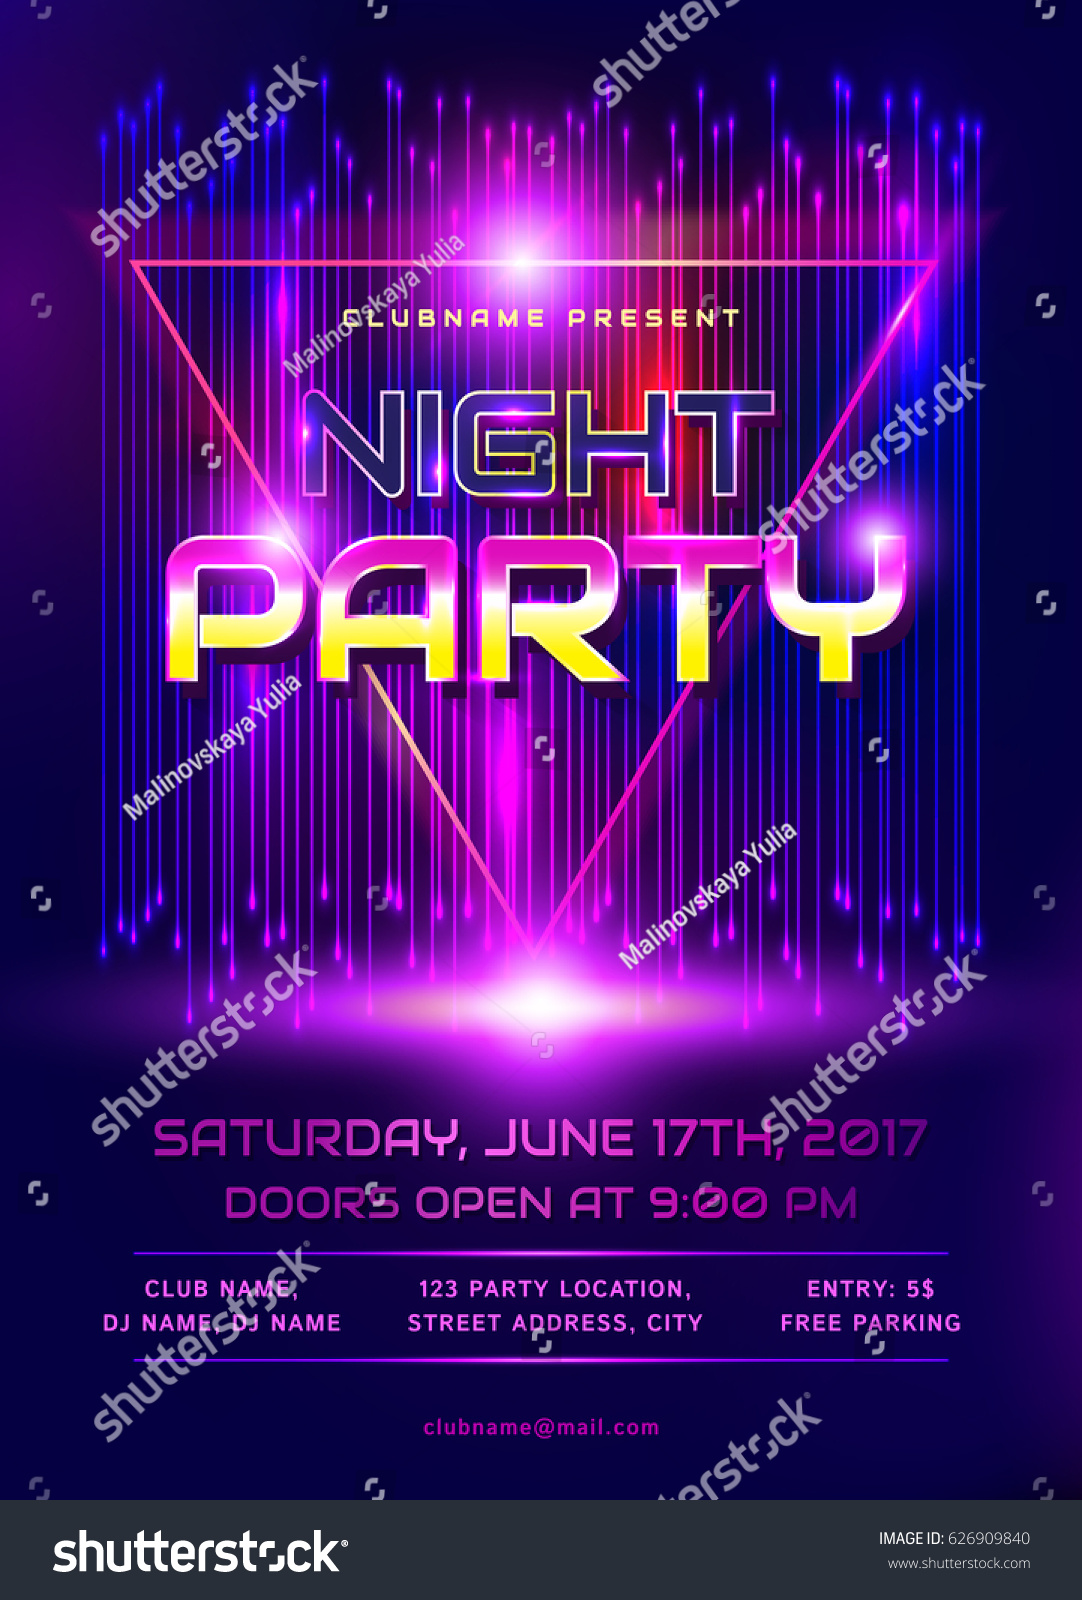 Colorful flyer night party invitation template em vetor stock colorful flyer for night party invitation template with abstract shiny background vector illustration stopboris Gallery